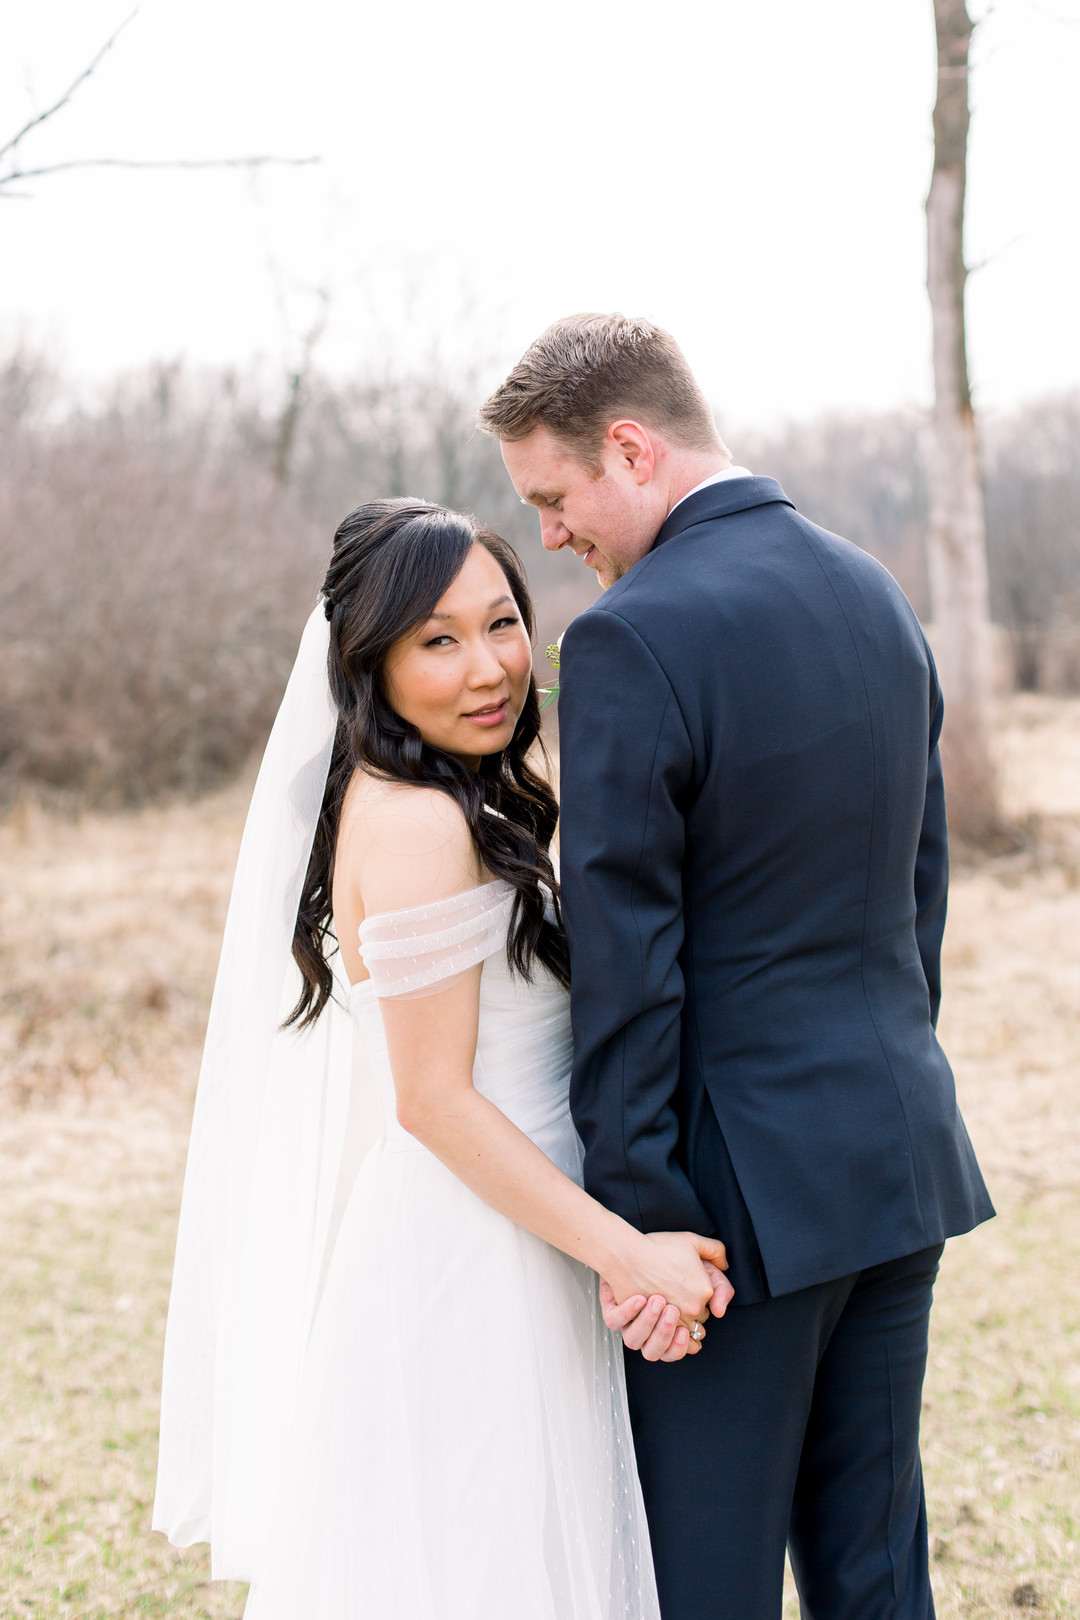 Spring wedding inspiration captured by Nicole Morisco Photography. Find more spring wedding ideas at CHItheeWED.com!